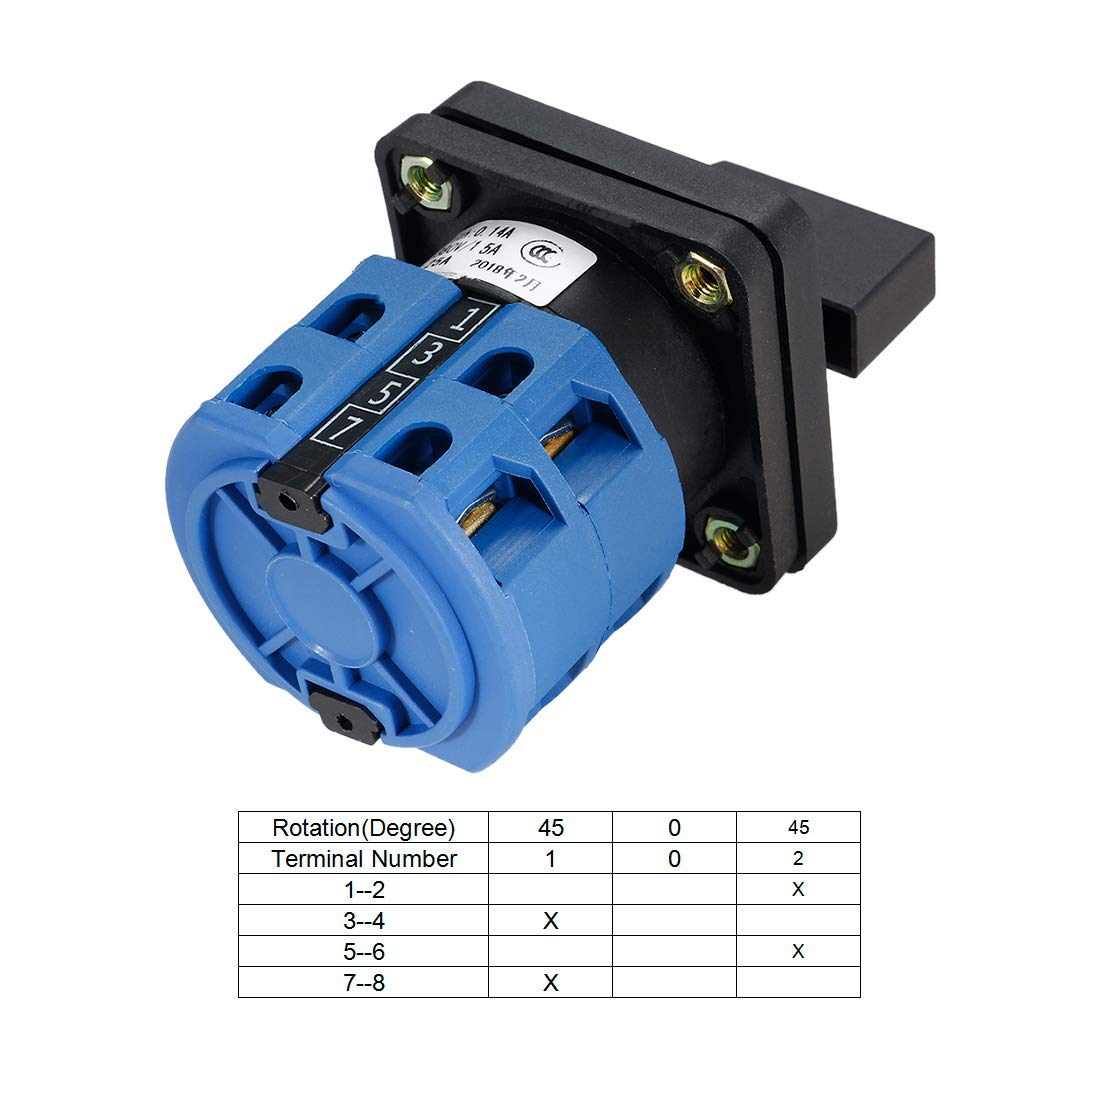 Ranbo Changeover Switch 3 Position Rotary Selector Cam Switch Panel Mount 8 Terminals Latching Ui 550V Ith 20A Blue 50x50, 3 P 8 T, Ith 20A